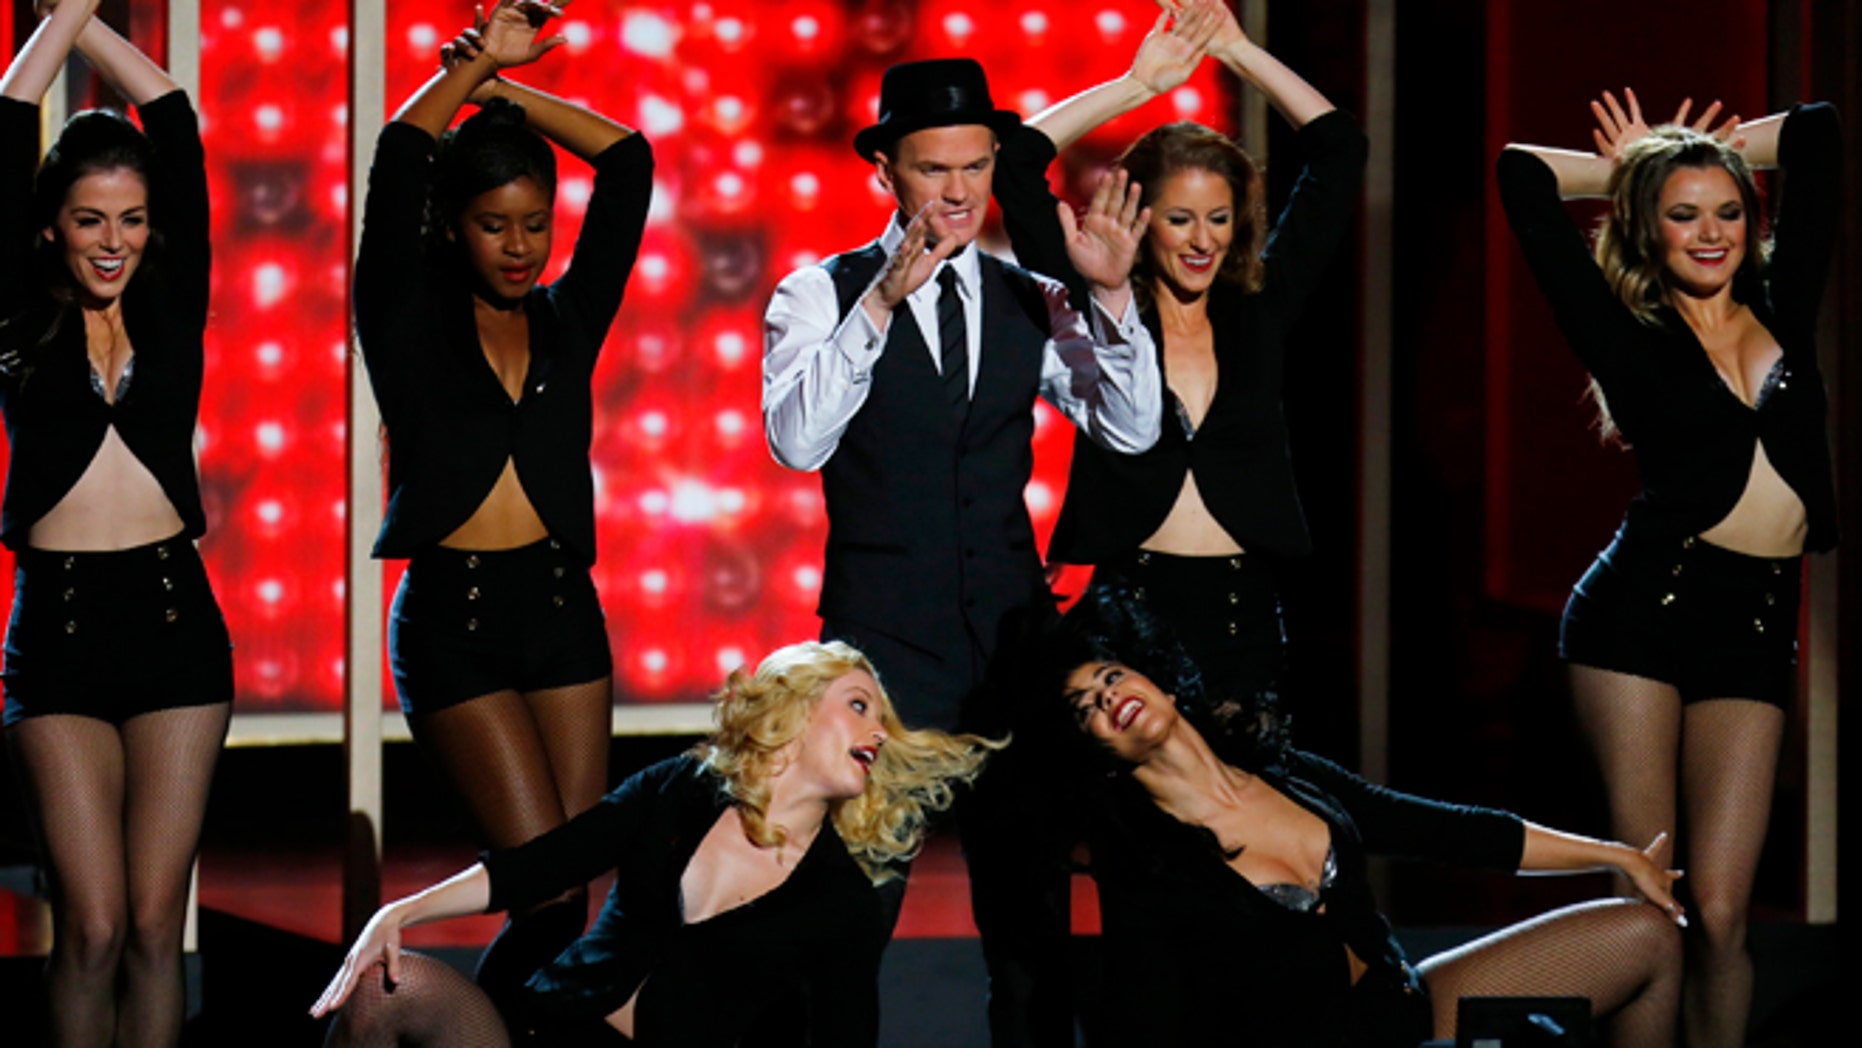 Host Neil Patrick Harris performs a musical number at the 65th Primetime Emmy Awards in Los Angeles September 22, 2013.